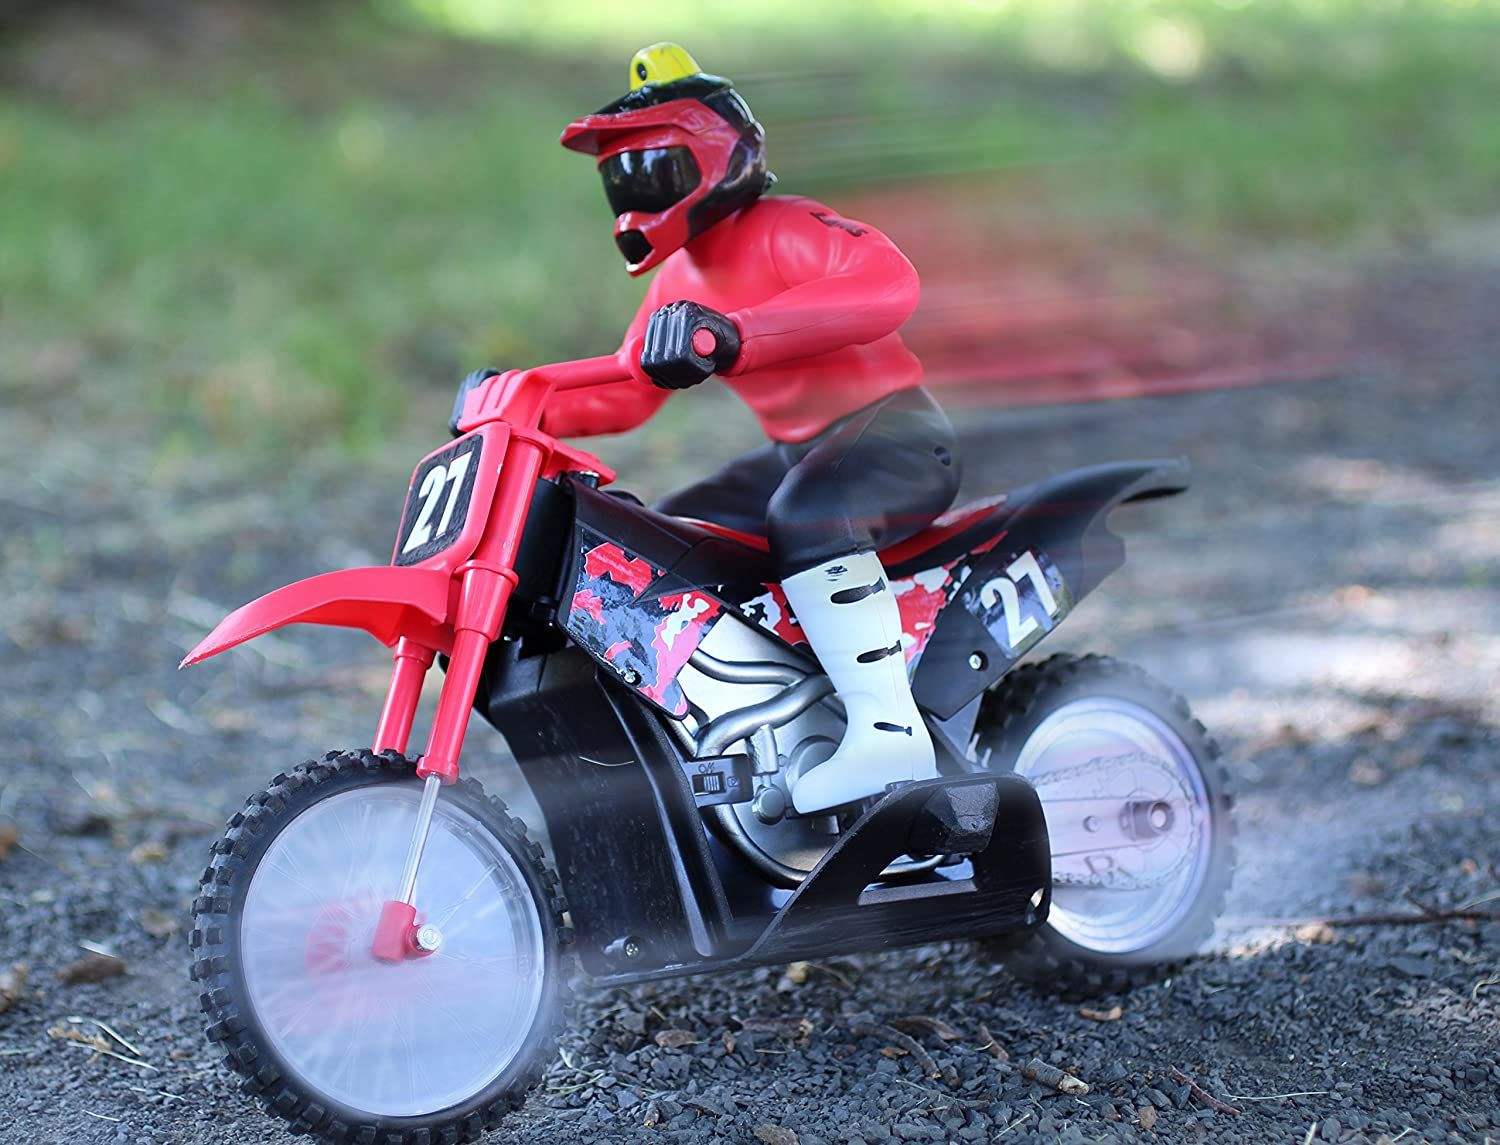 new xtreme cycle moto cam red black red white diecast toy vehicle motorcycle ebay. Black Bedroom Furniture Sets. Home Design Ideas